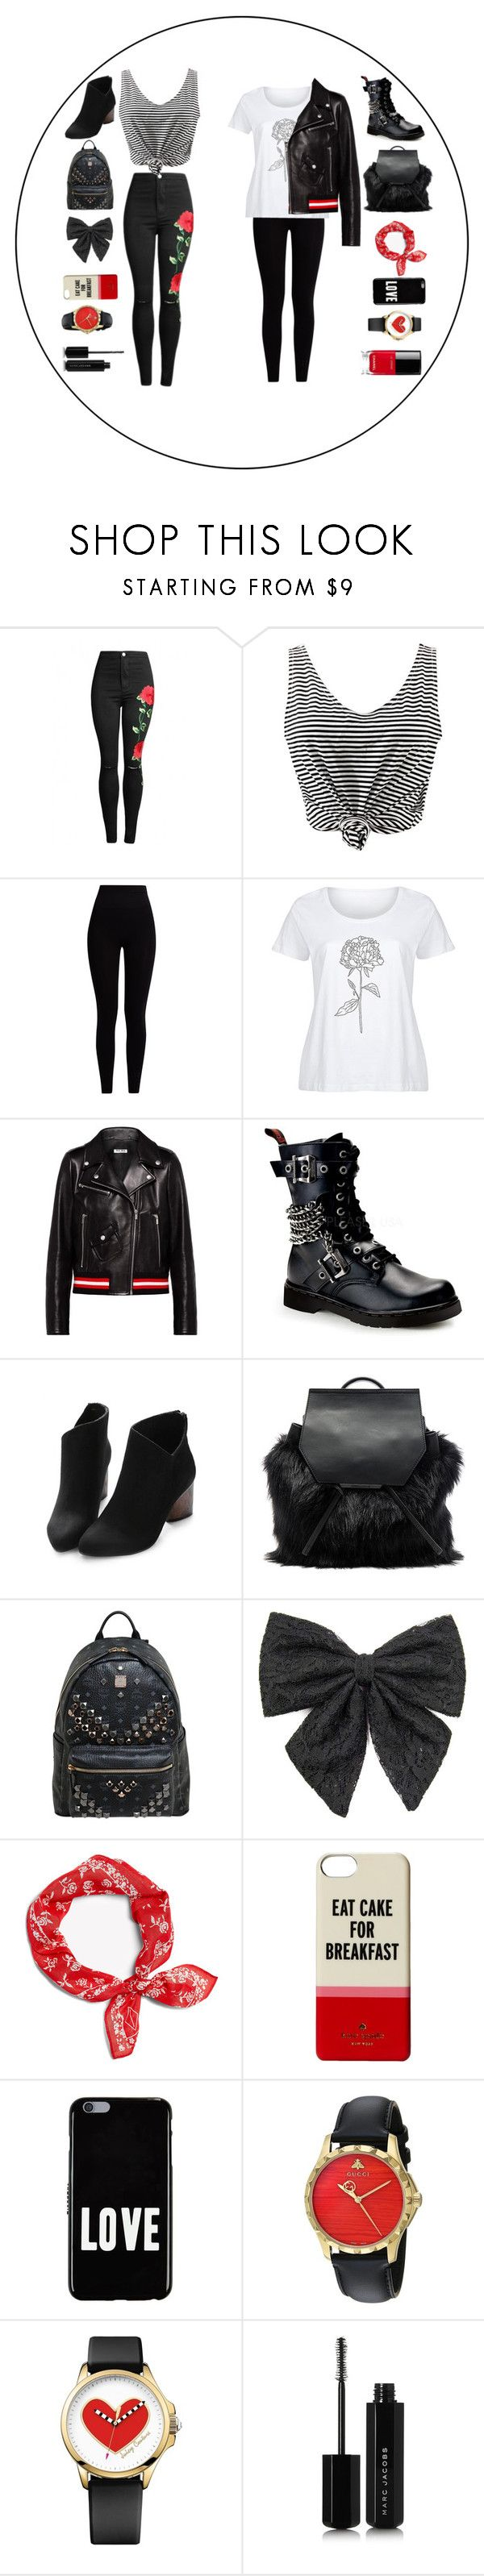 """Nothin' But Love Tour"" by mikeilasilva ❤ liked on Polyvore featuring WithChic, Pepper & Mayne, LC Trendz, Miu Miu, Demonia, Kendall + Kylie, MCM, Carole, rag & bone and Kate Spade"